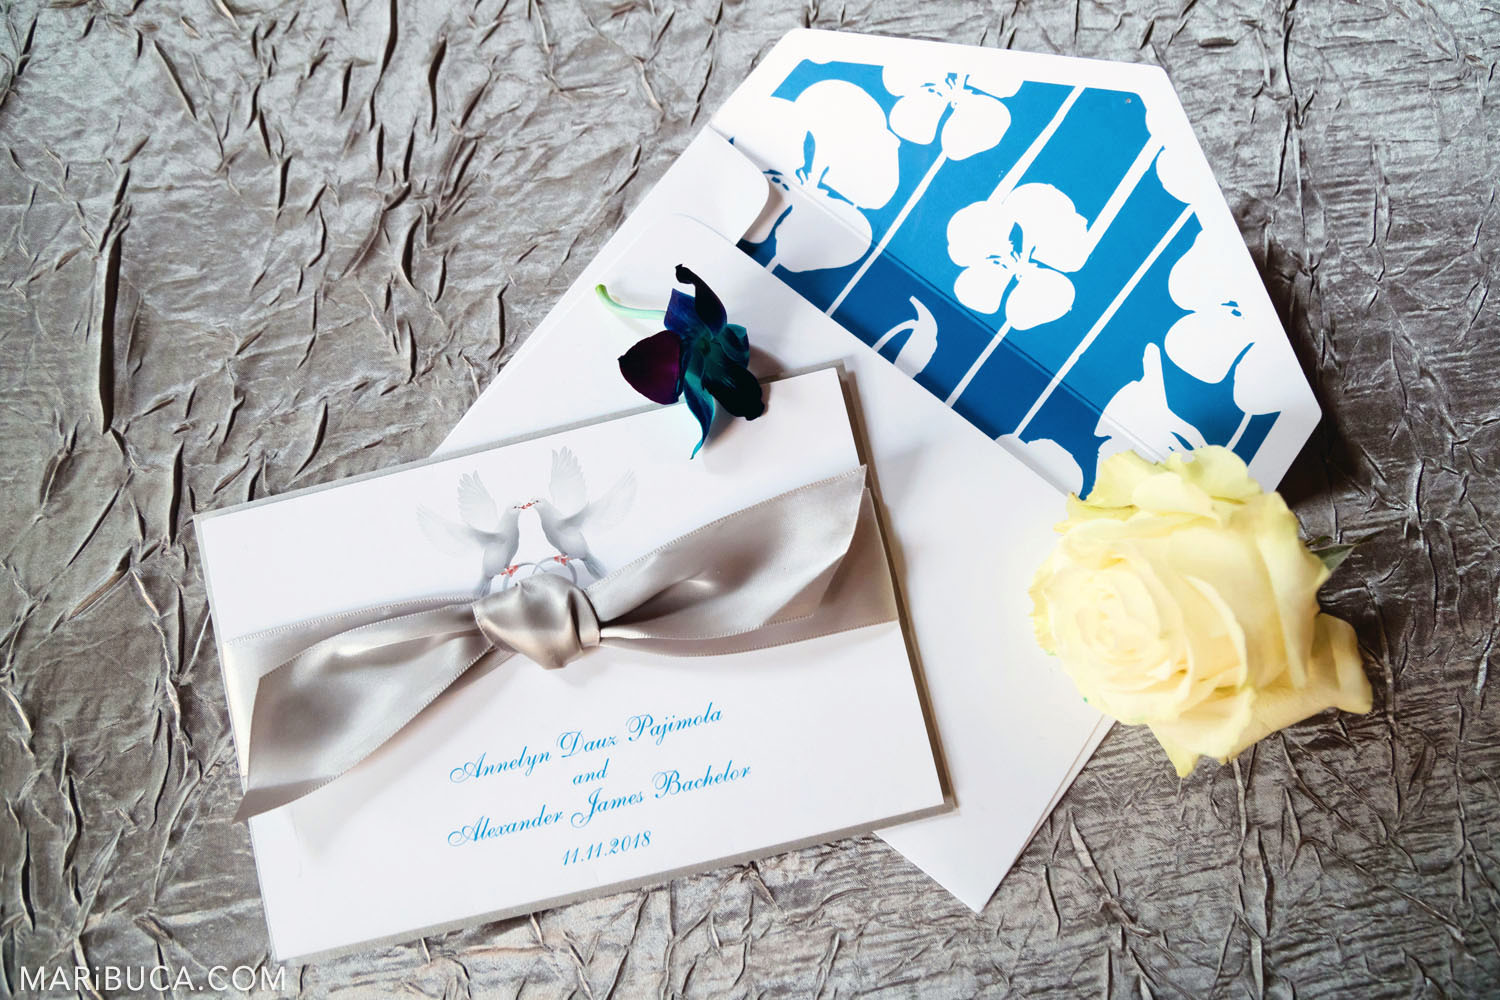 Wedding invitations: white envelopes with silver bow, yellow rose and silver background